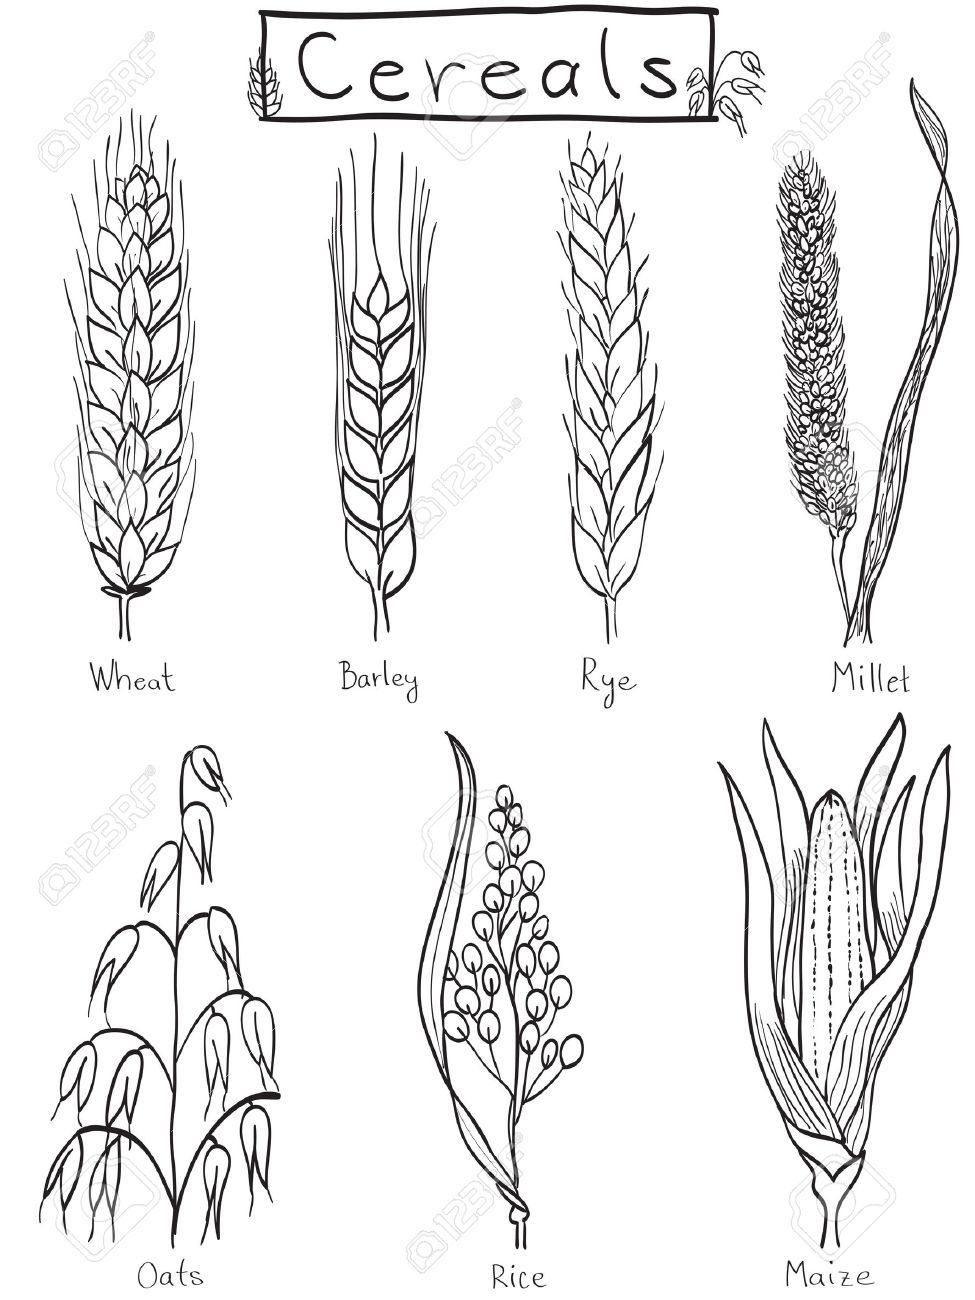 cereals hand drawn illustration wheat, barley, rye, millet Wheat Grain Diagram cereals hand drawn illustration wheat, barley, rye, millet, oat,